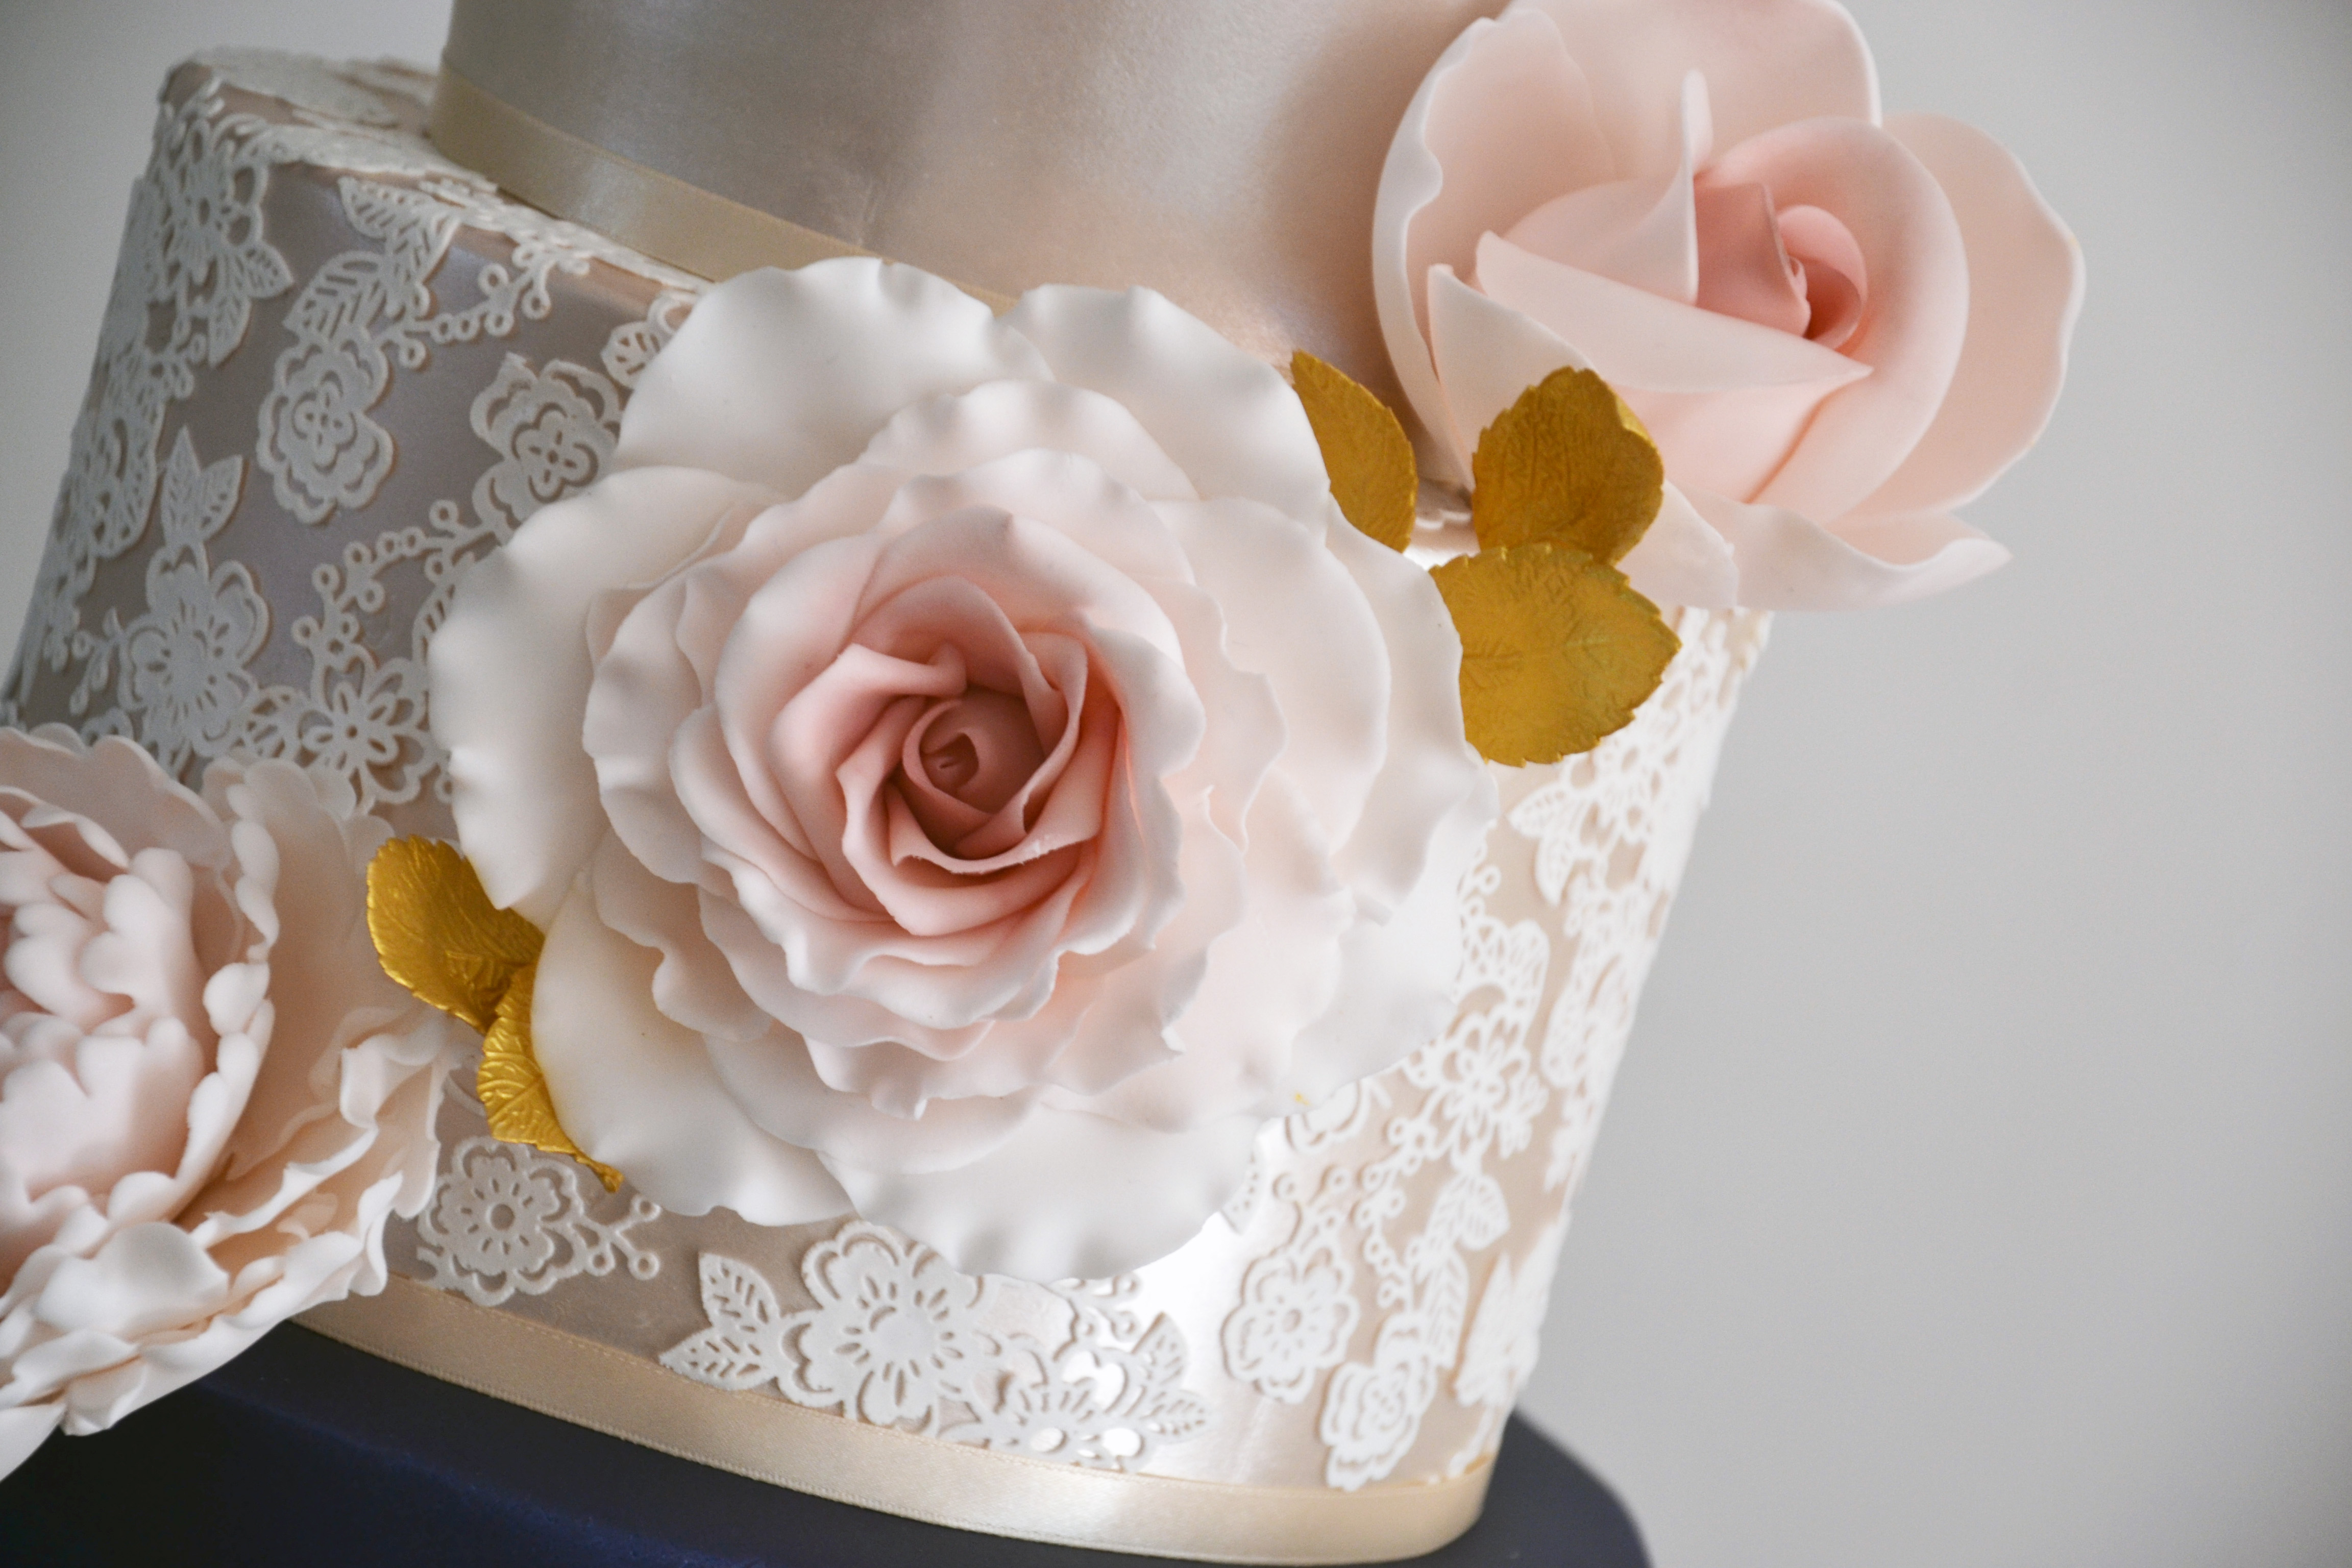 Handmade roses and edible lace